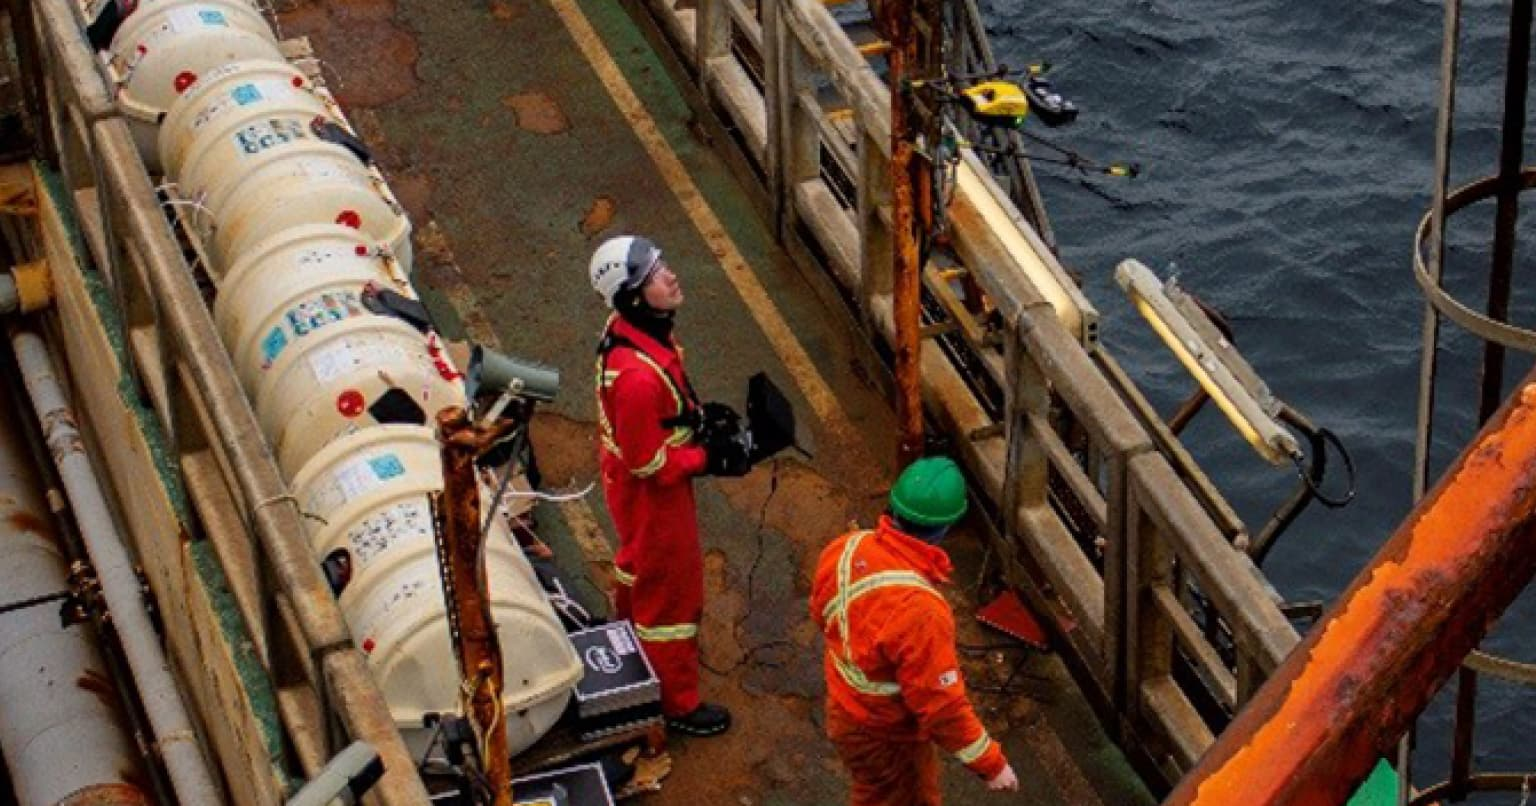 Image of Suncor employees on FPSO taken by a drone